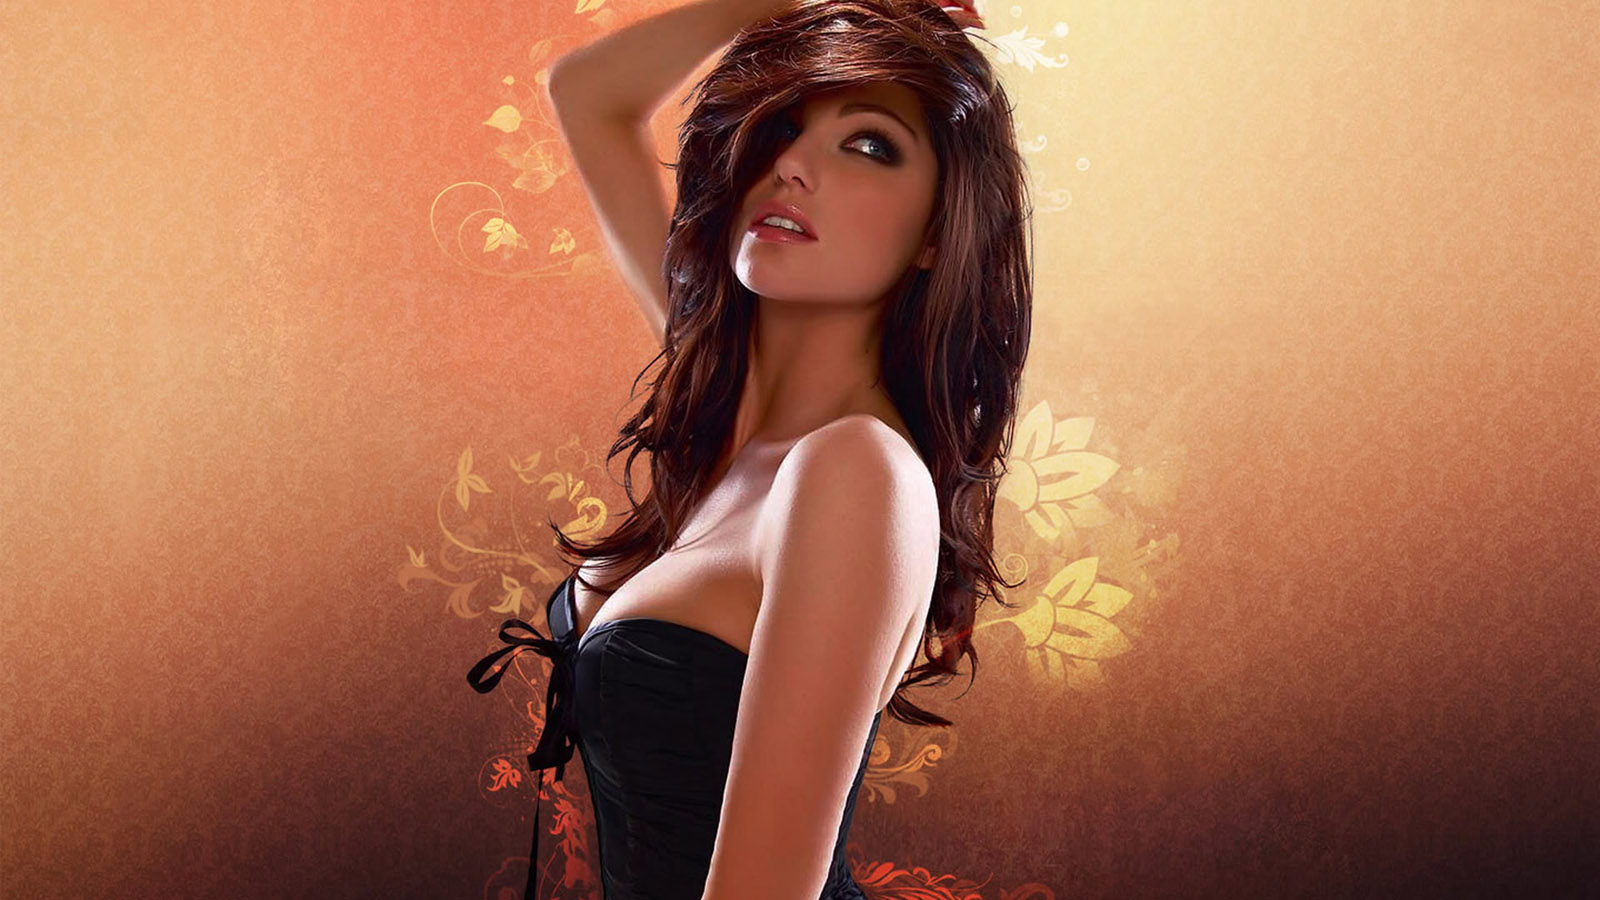 beautiful ladies wallpapers 57 wallpapers u2013 adorable wallpapers